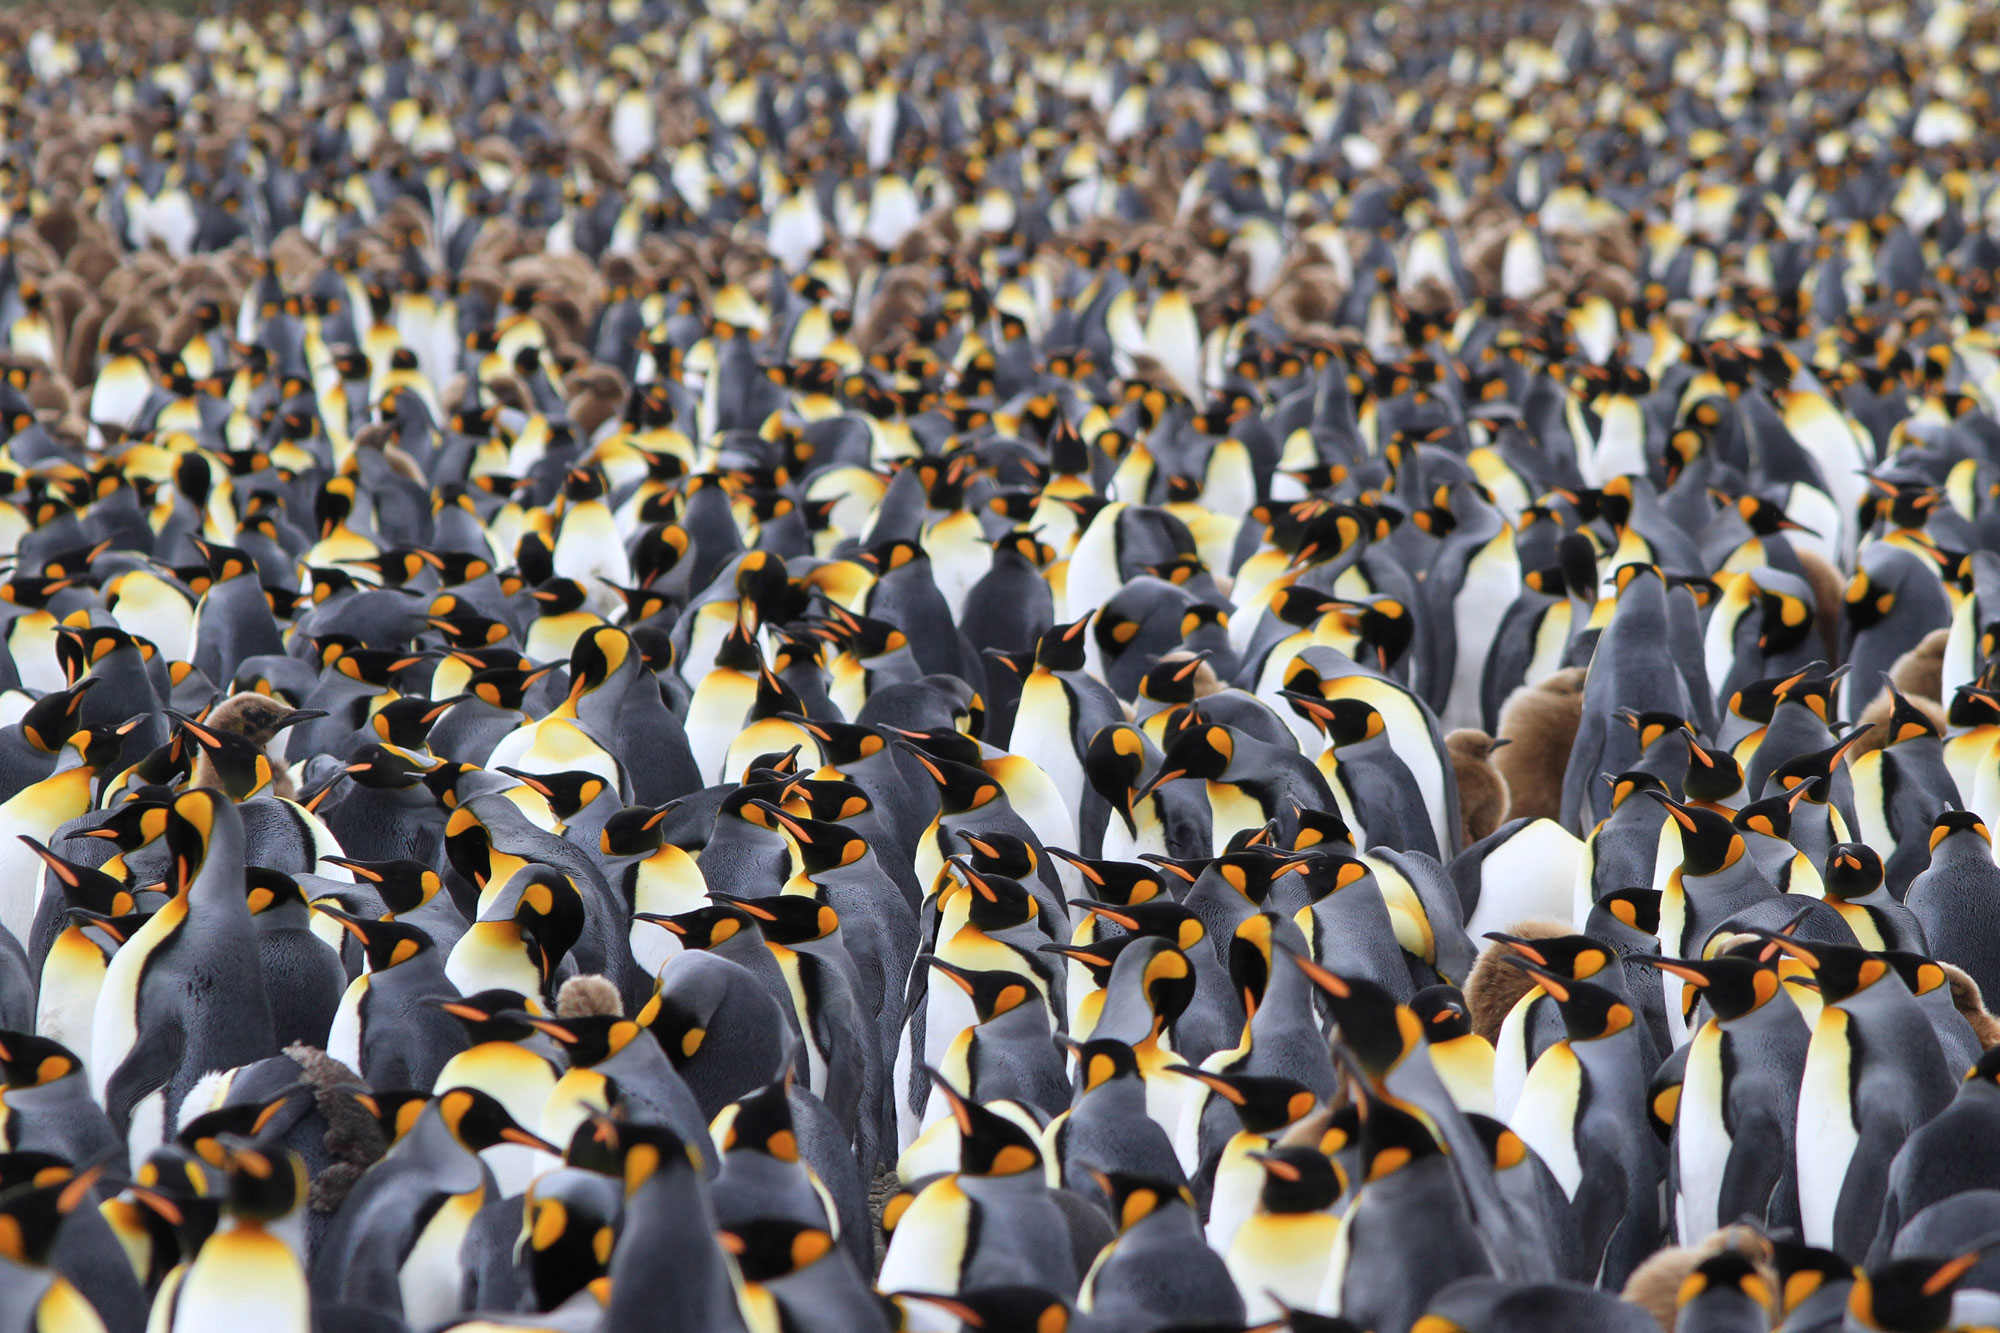 King penguins stand shoulder to shoulder on South Georgia, overwhelming visitors with their incessant calls, powerful smells and sheer beauty. Photo: Noah Strycker